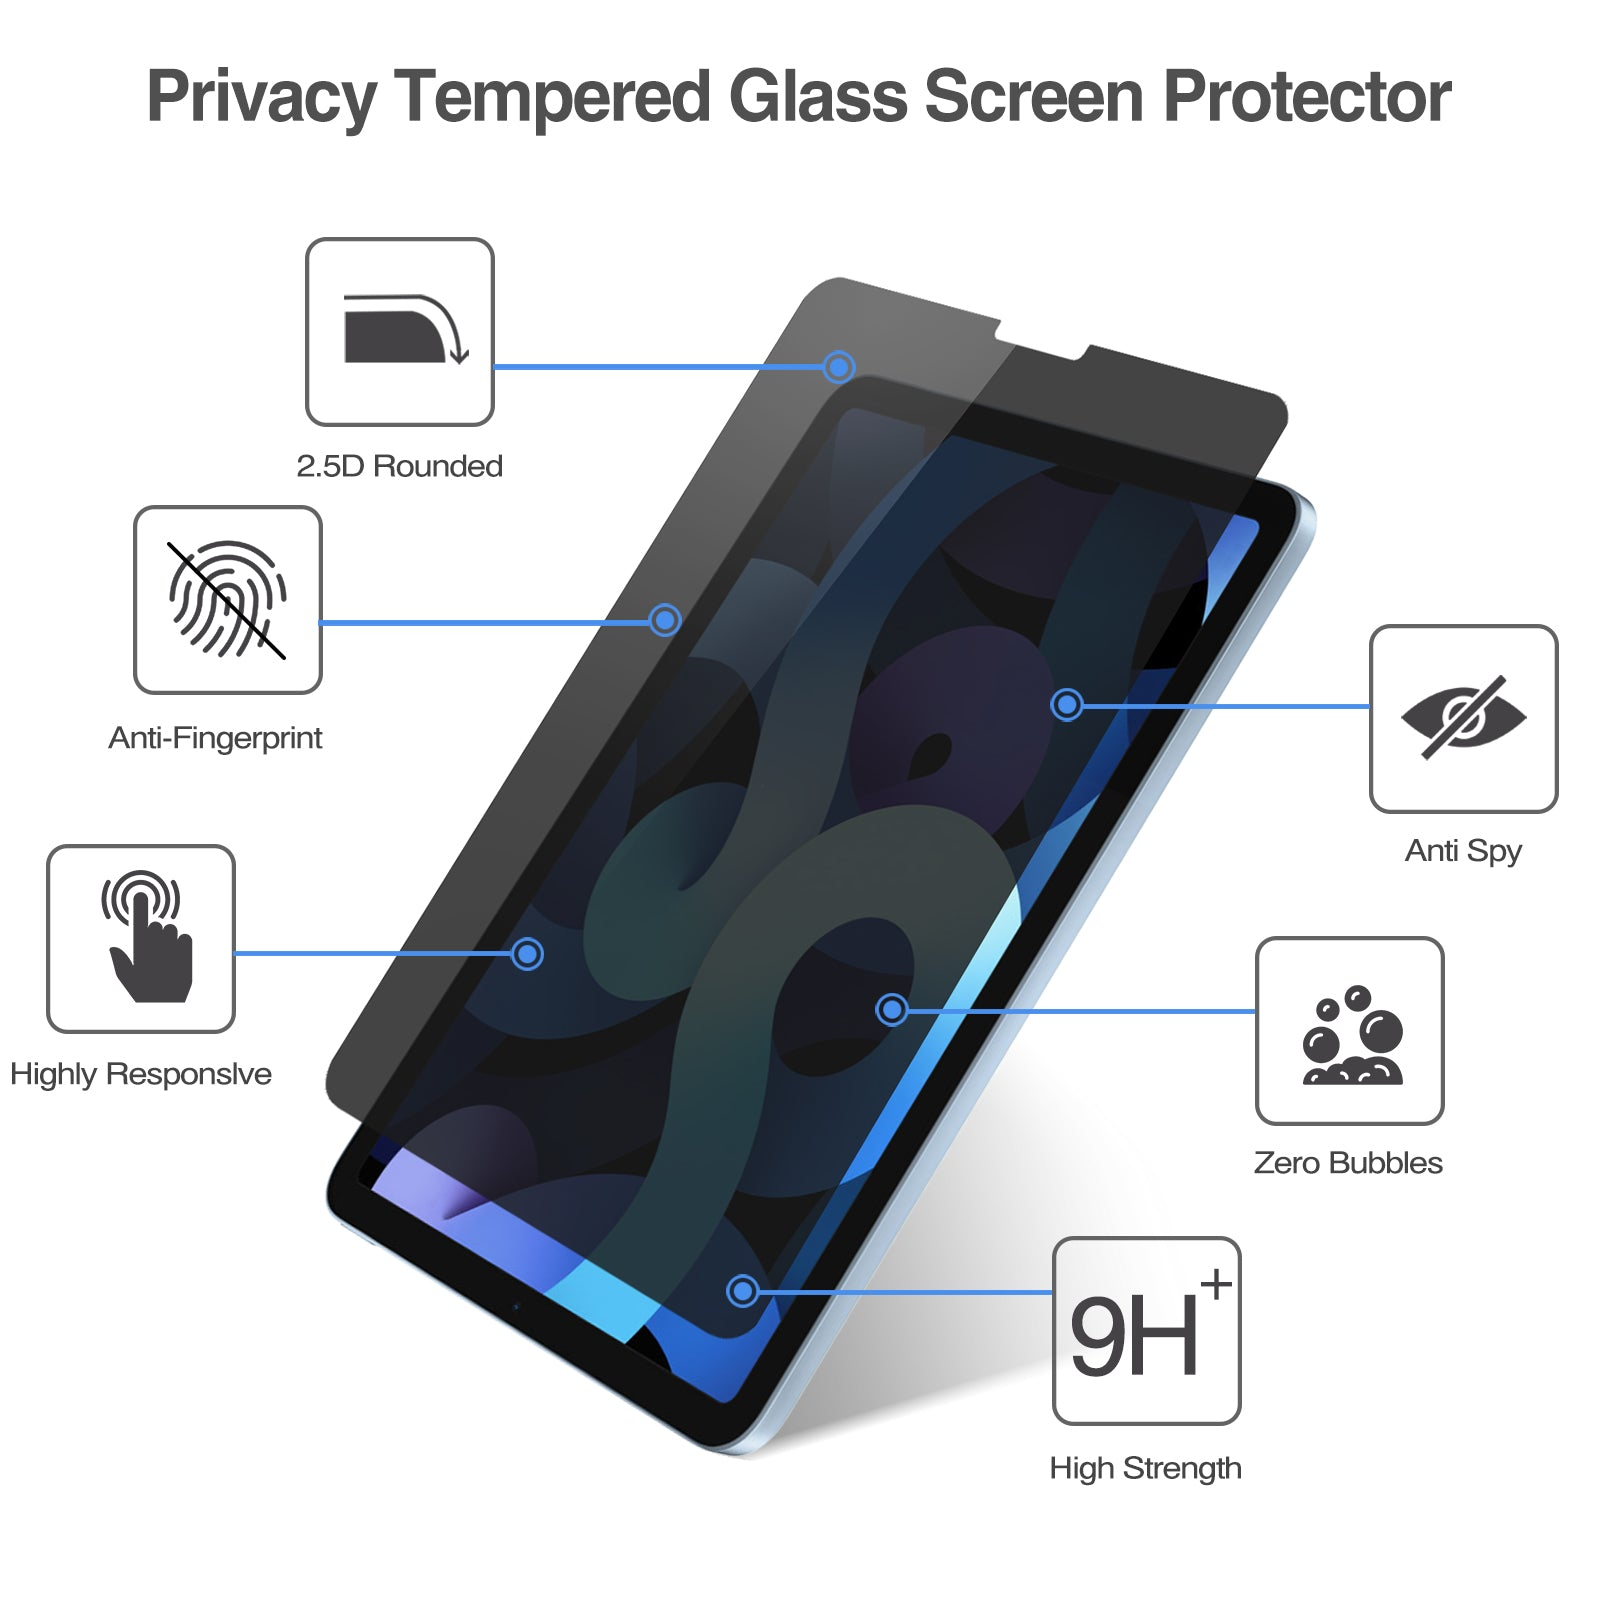 New iPad Air 10.9 4th 2020 Generation Privacy Screen Protector | ProCase